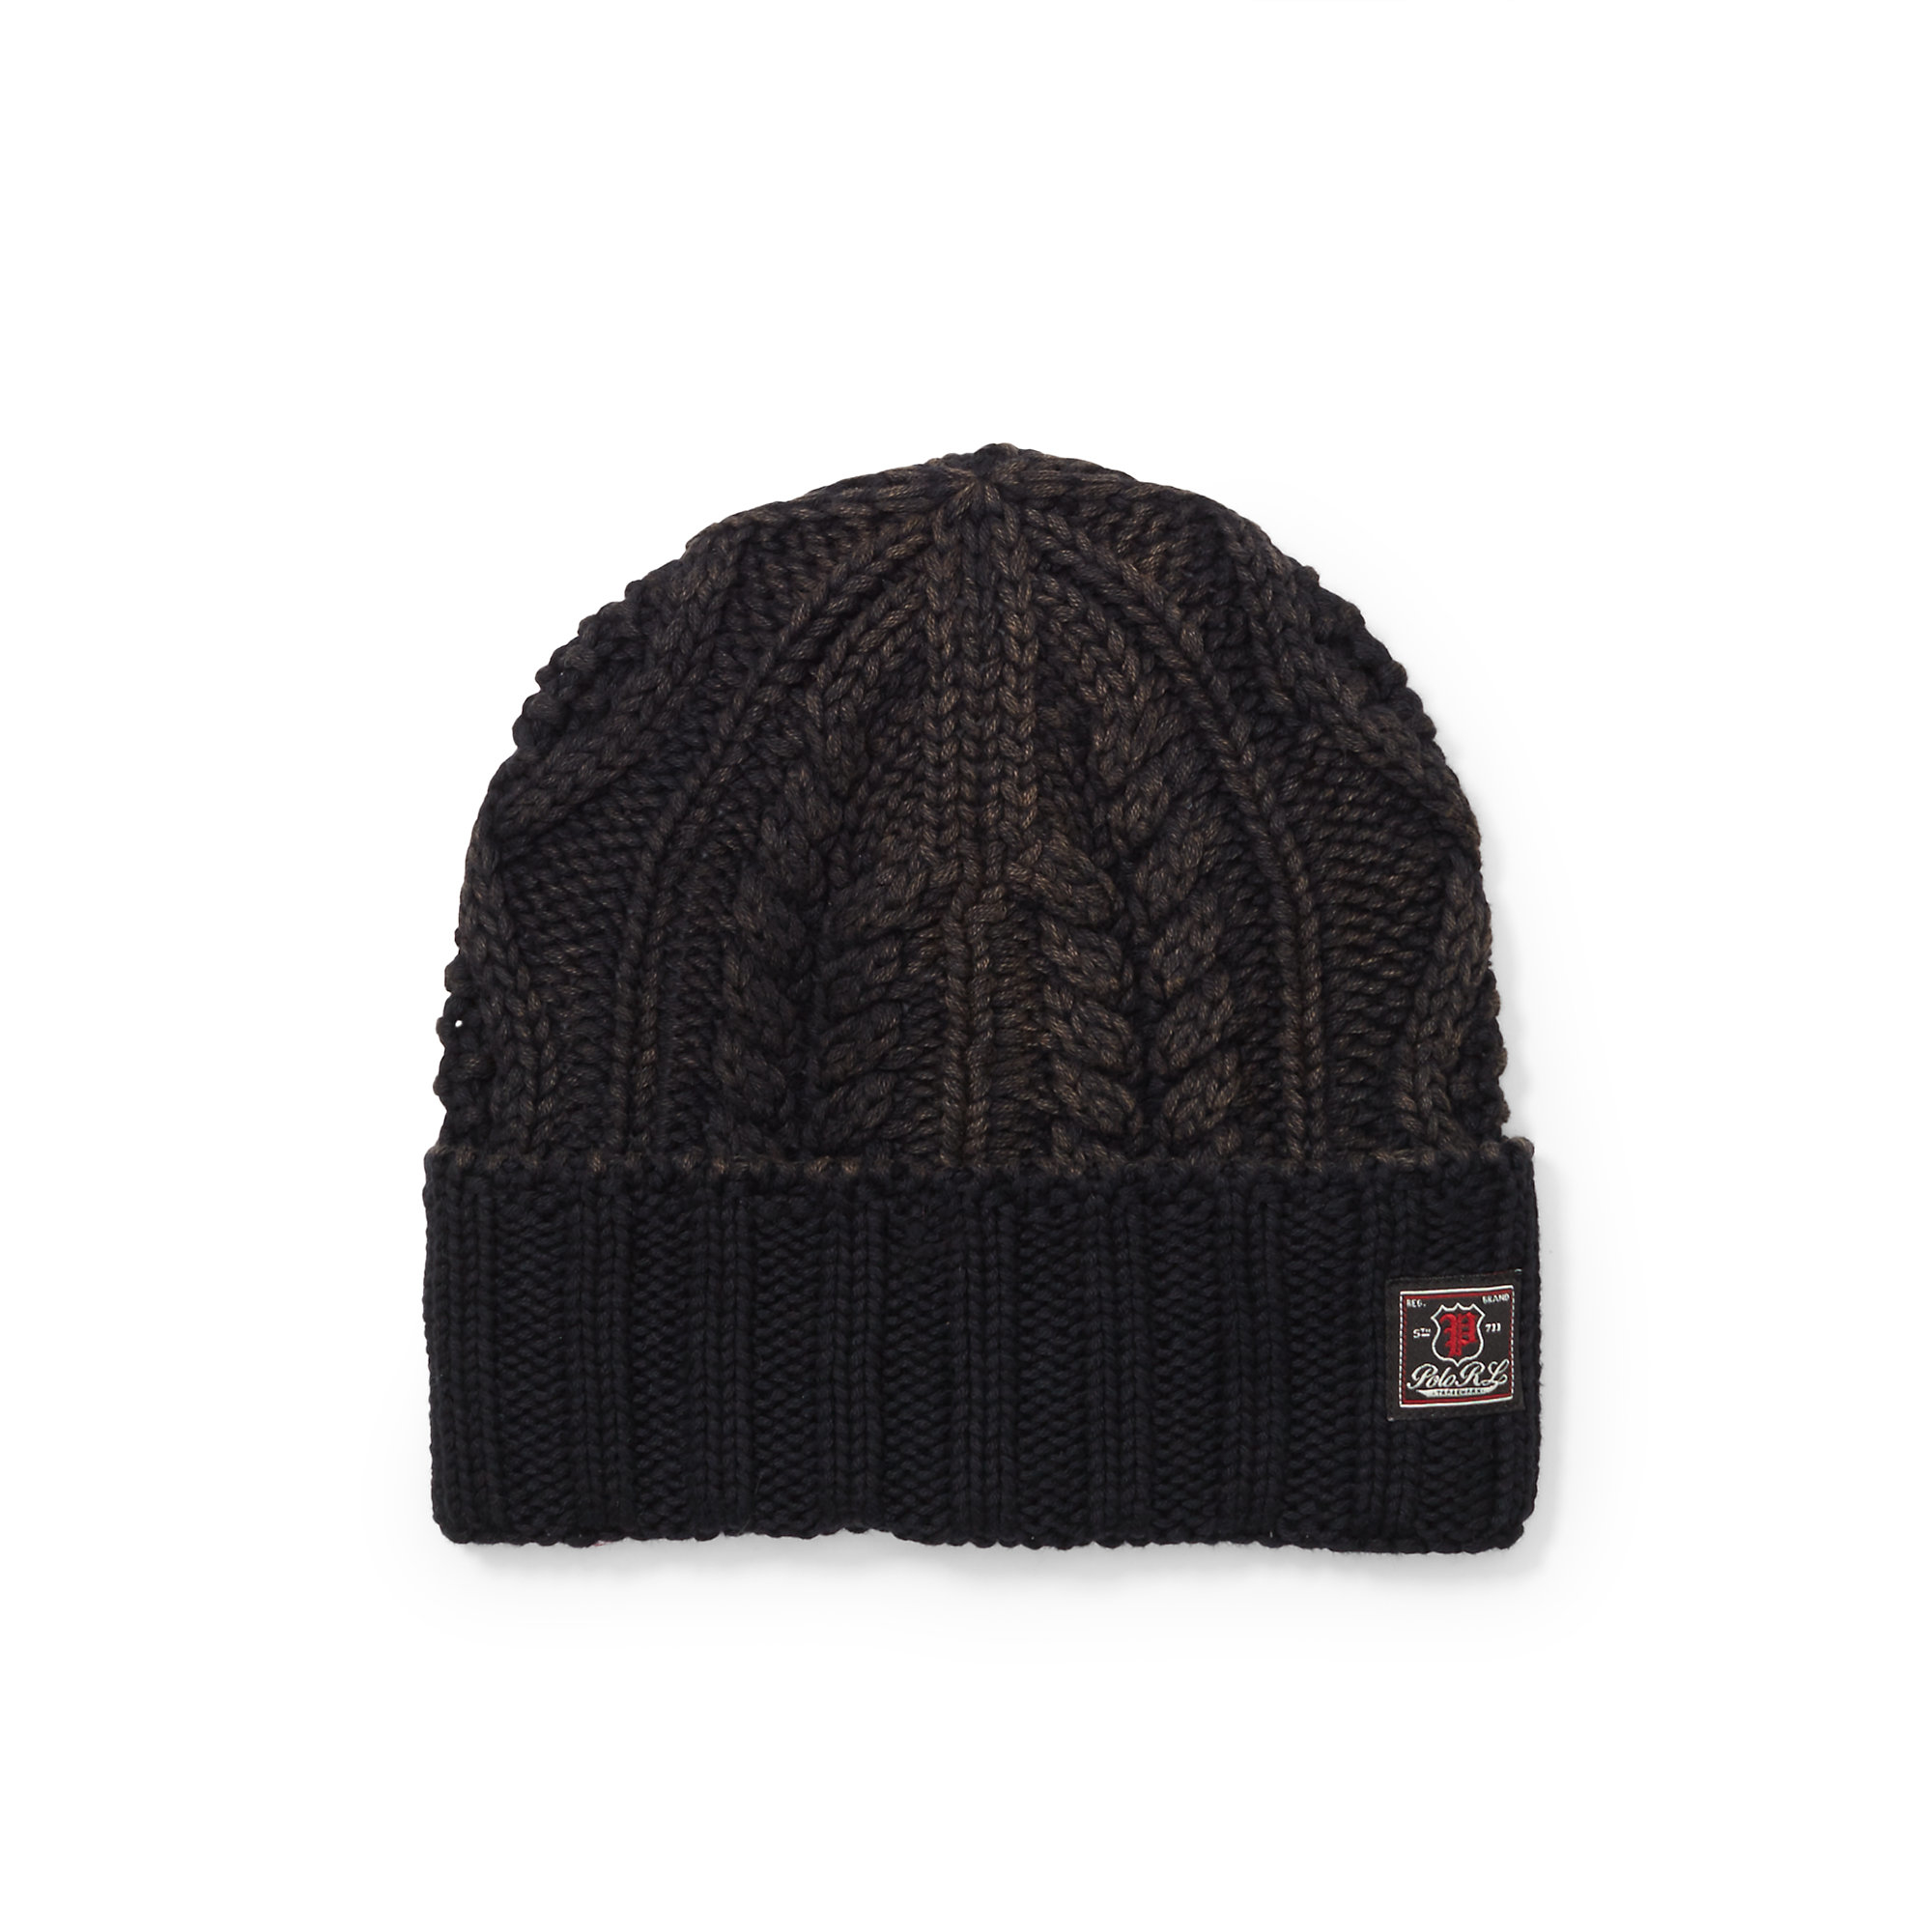 e448748cae3 Lyst - Polo Ralph Lauren Aran-knit Cotton Hat in Black for Men